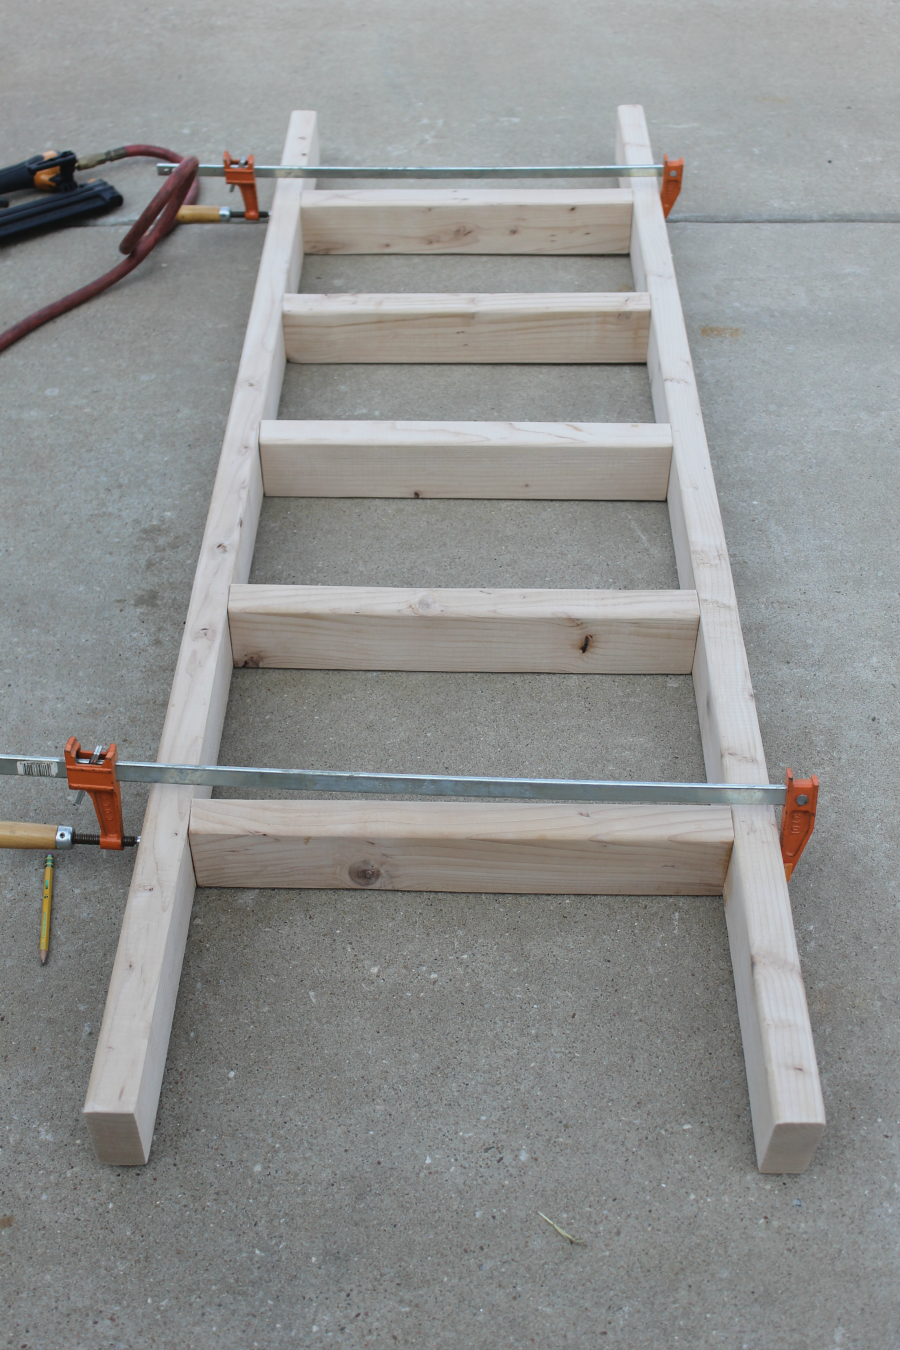 How to make a diy blanket ladder for just 10 life storage blog how to make a ladder clamp and allow wood glue to dry solutioingenieria Gallery